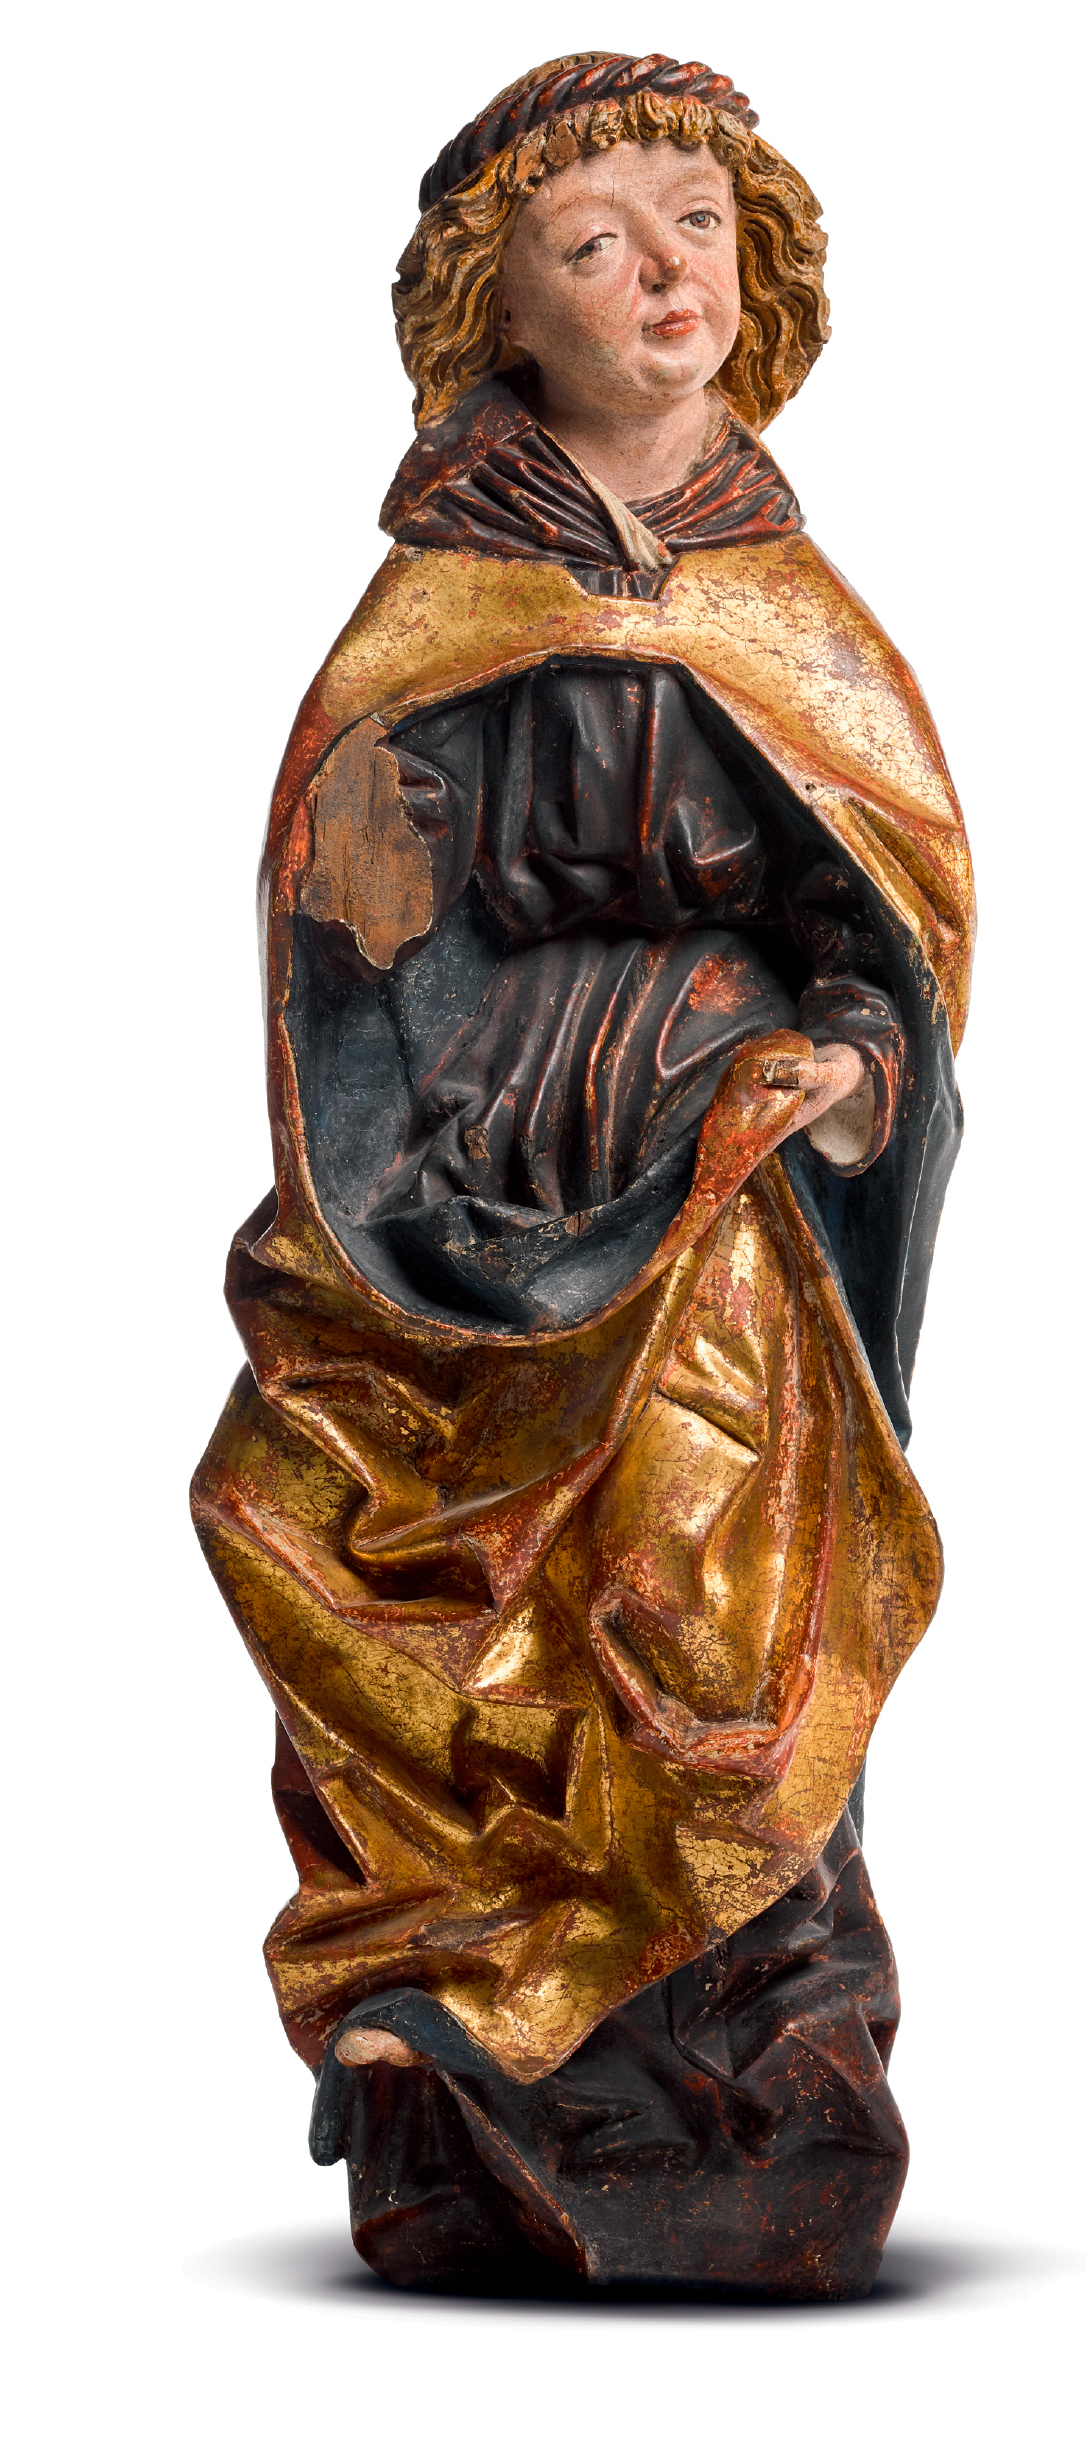 ATTRIBUTED TO THE WORKSHOP OF MICHAEL PACHER (CIRCA 1435-1498), AUSTRIAN, TYROL, LATE 15TH CENTURY   RELIEF OF A MALE SAINT, POSSIBLY SAINT JOHN